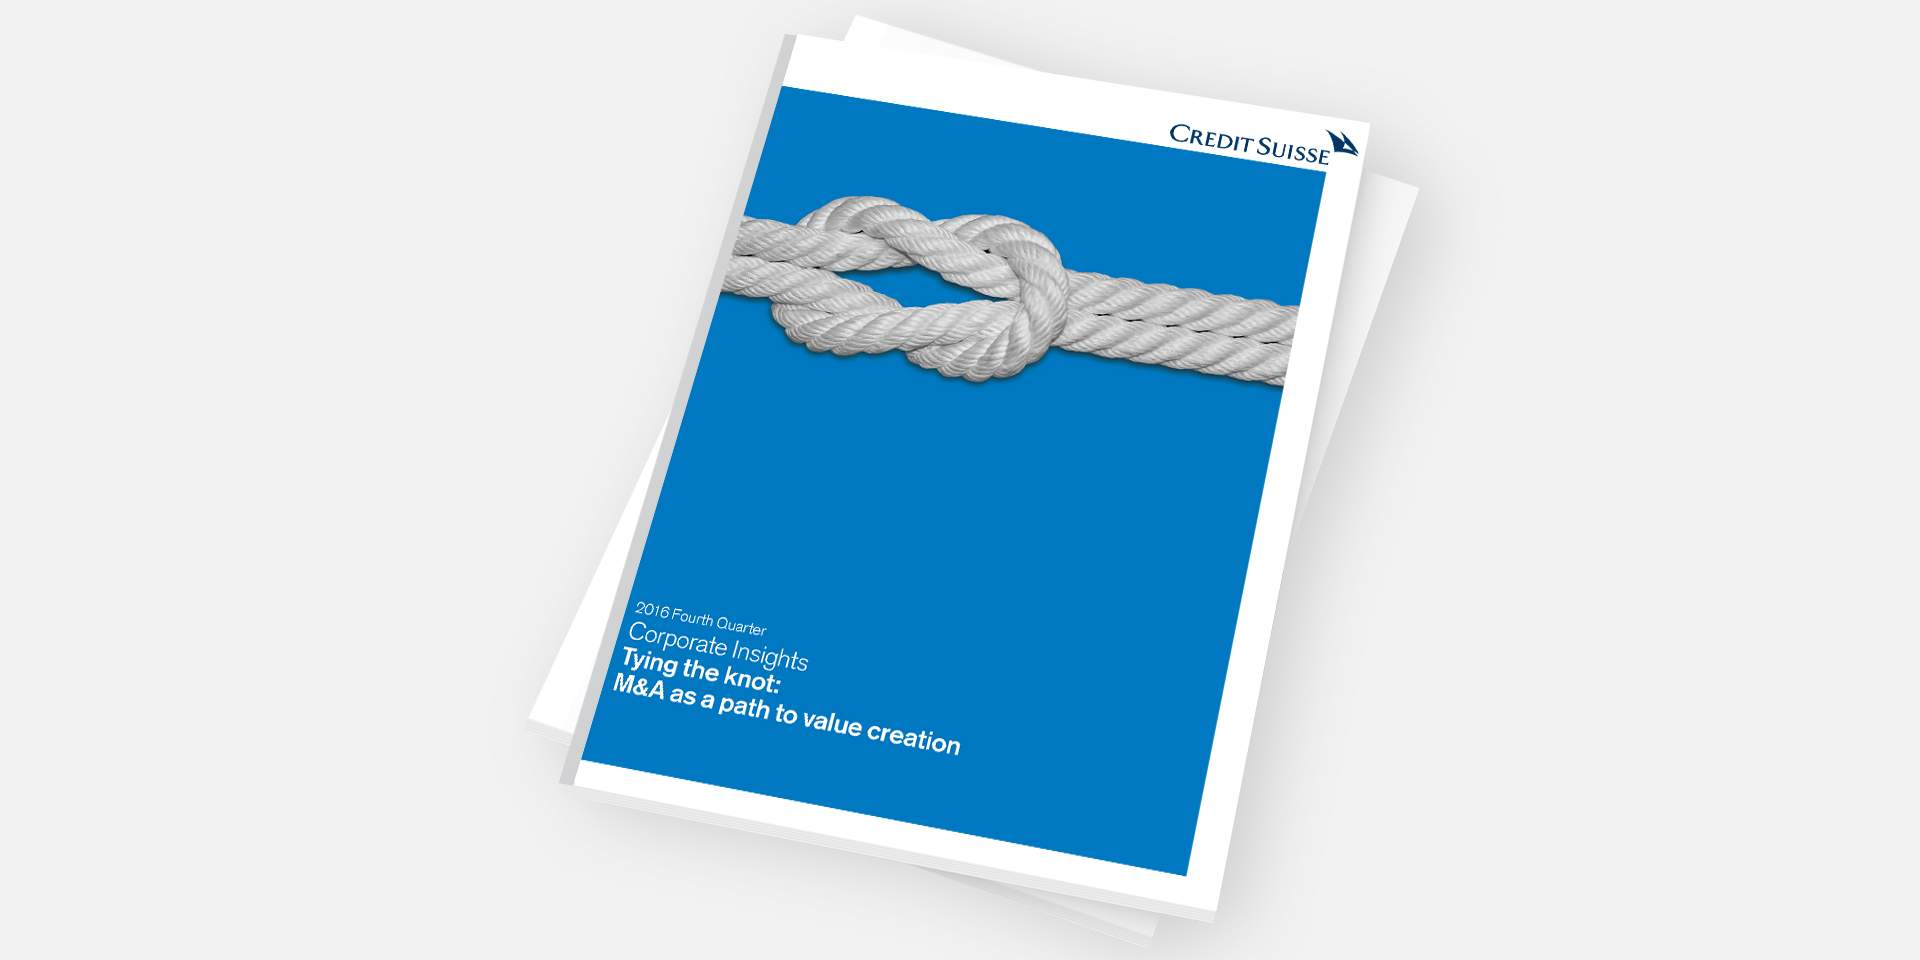 Tying the knot: M&A as a path to value creation